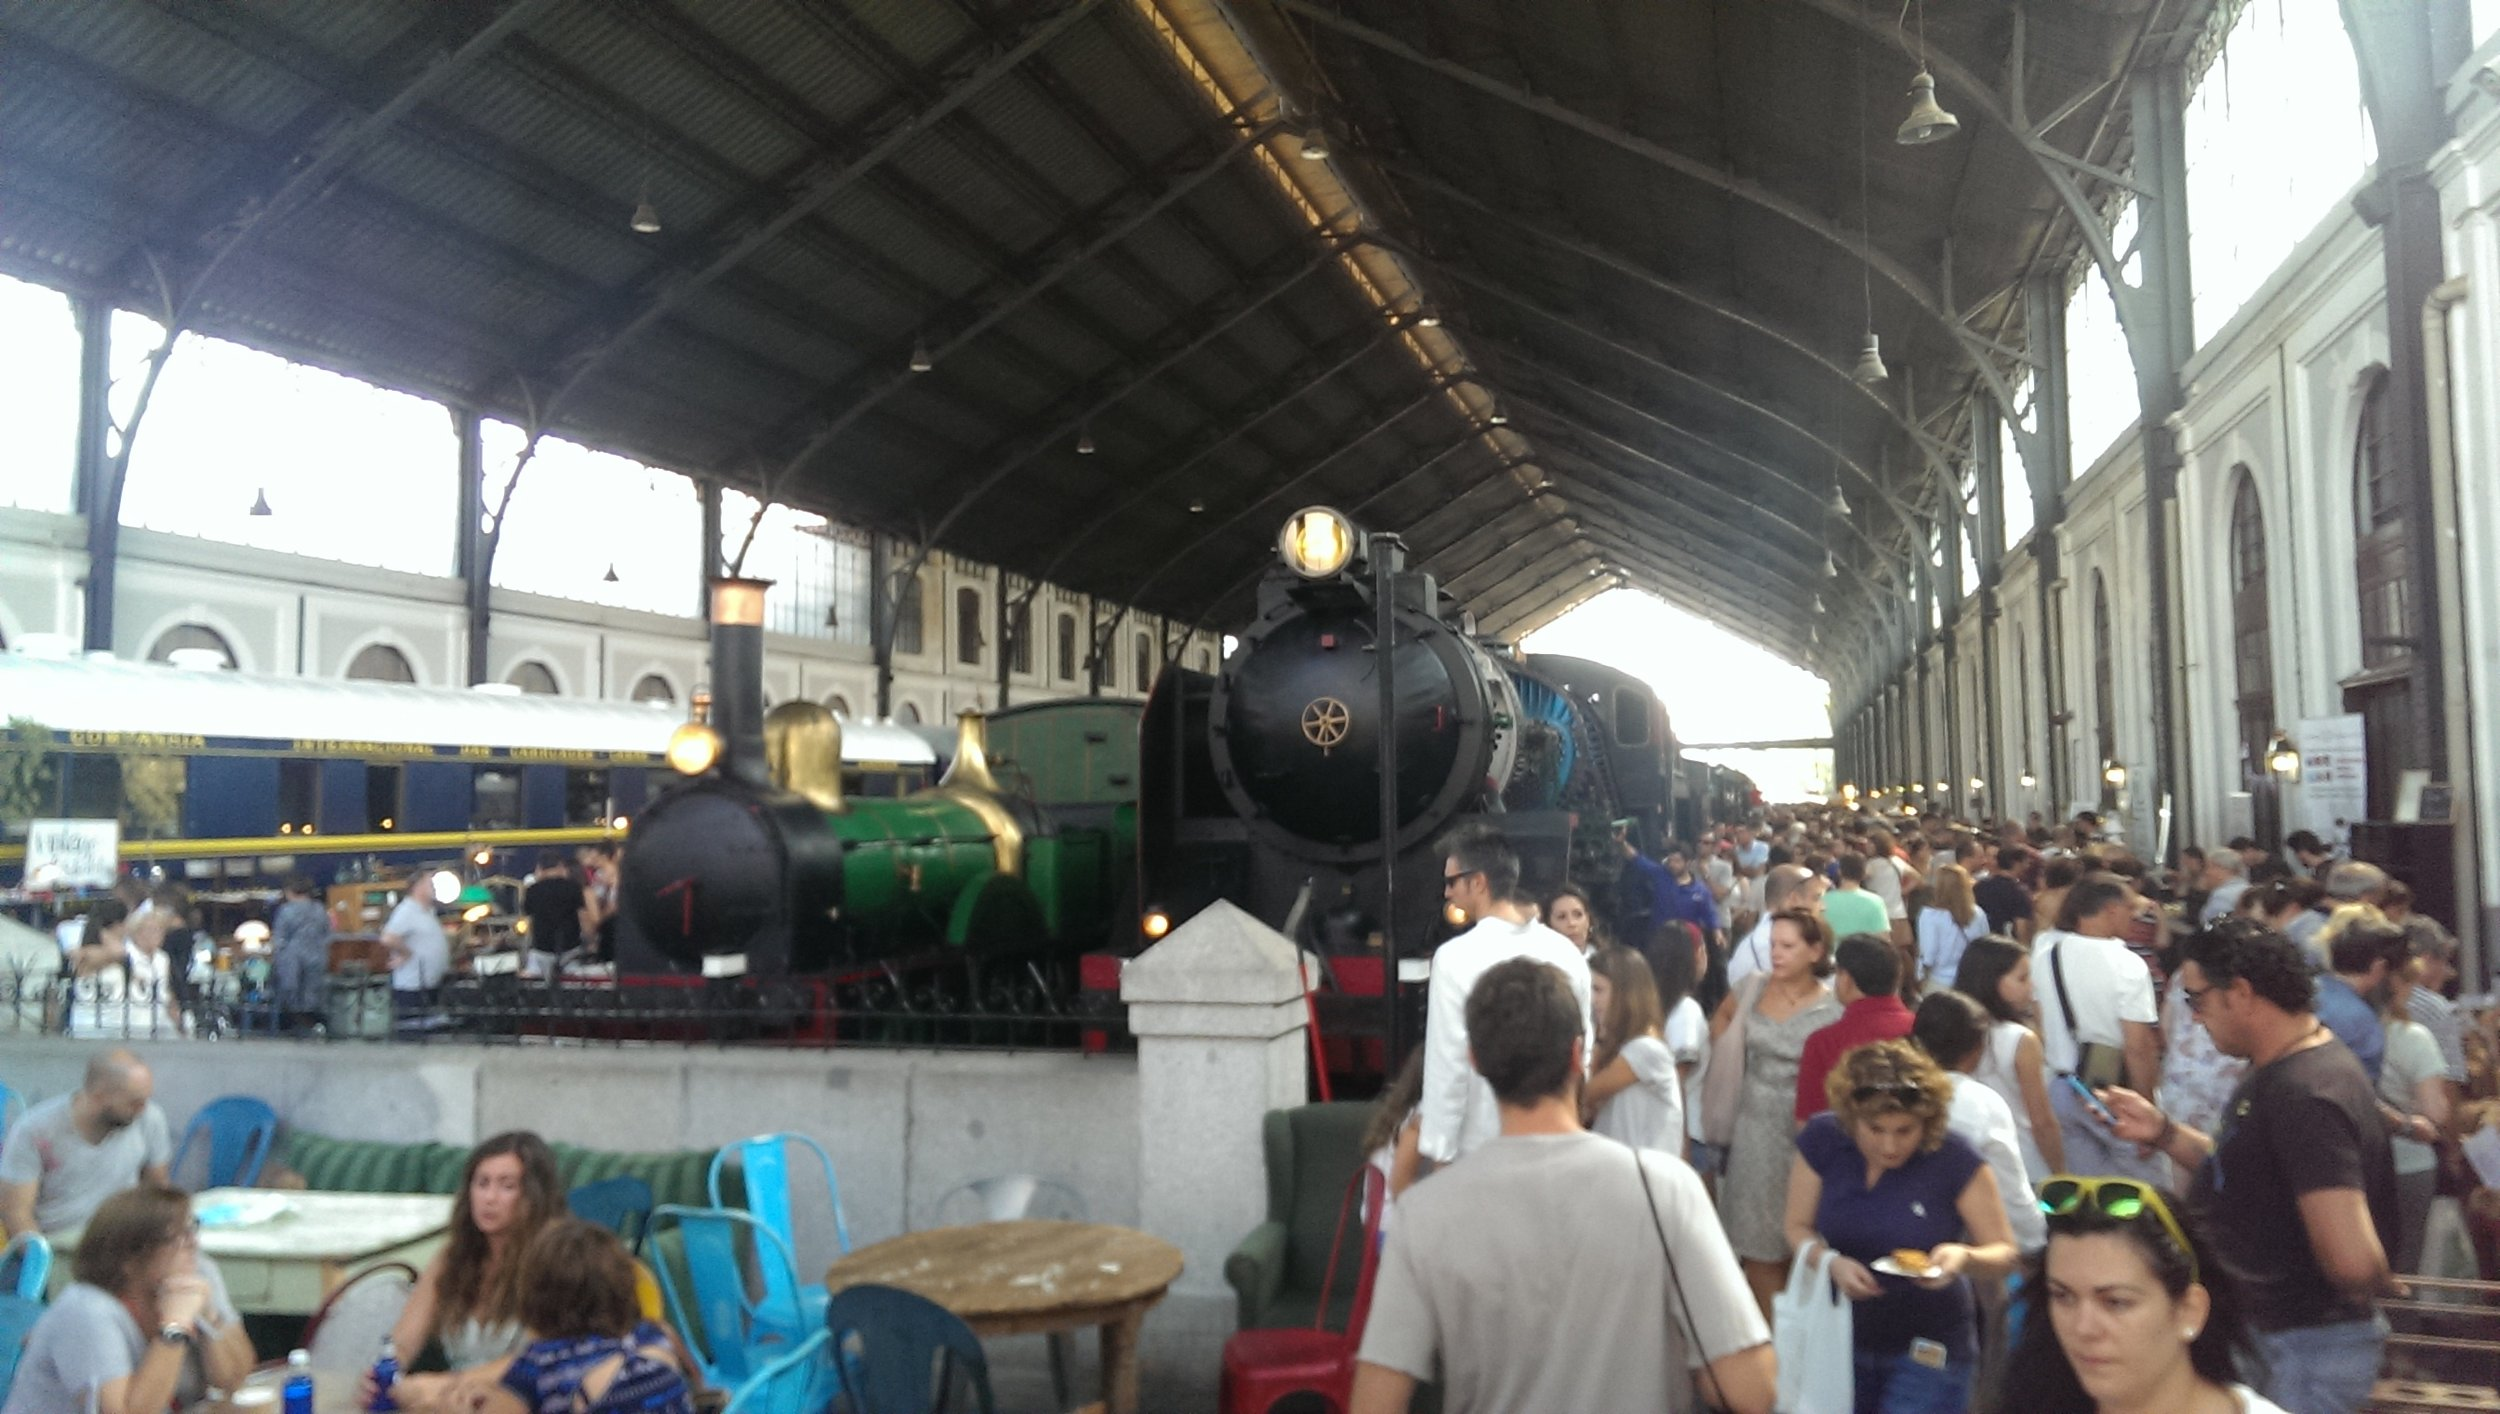 Monthly handicraft market in the railway museum